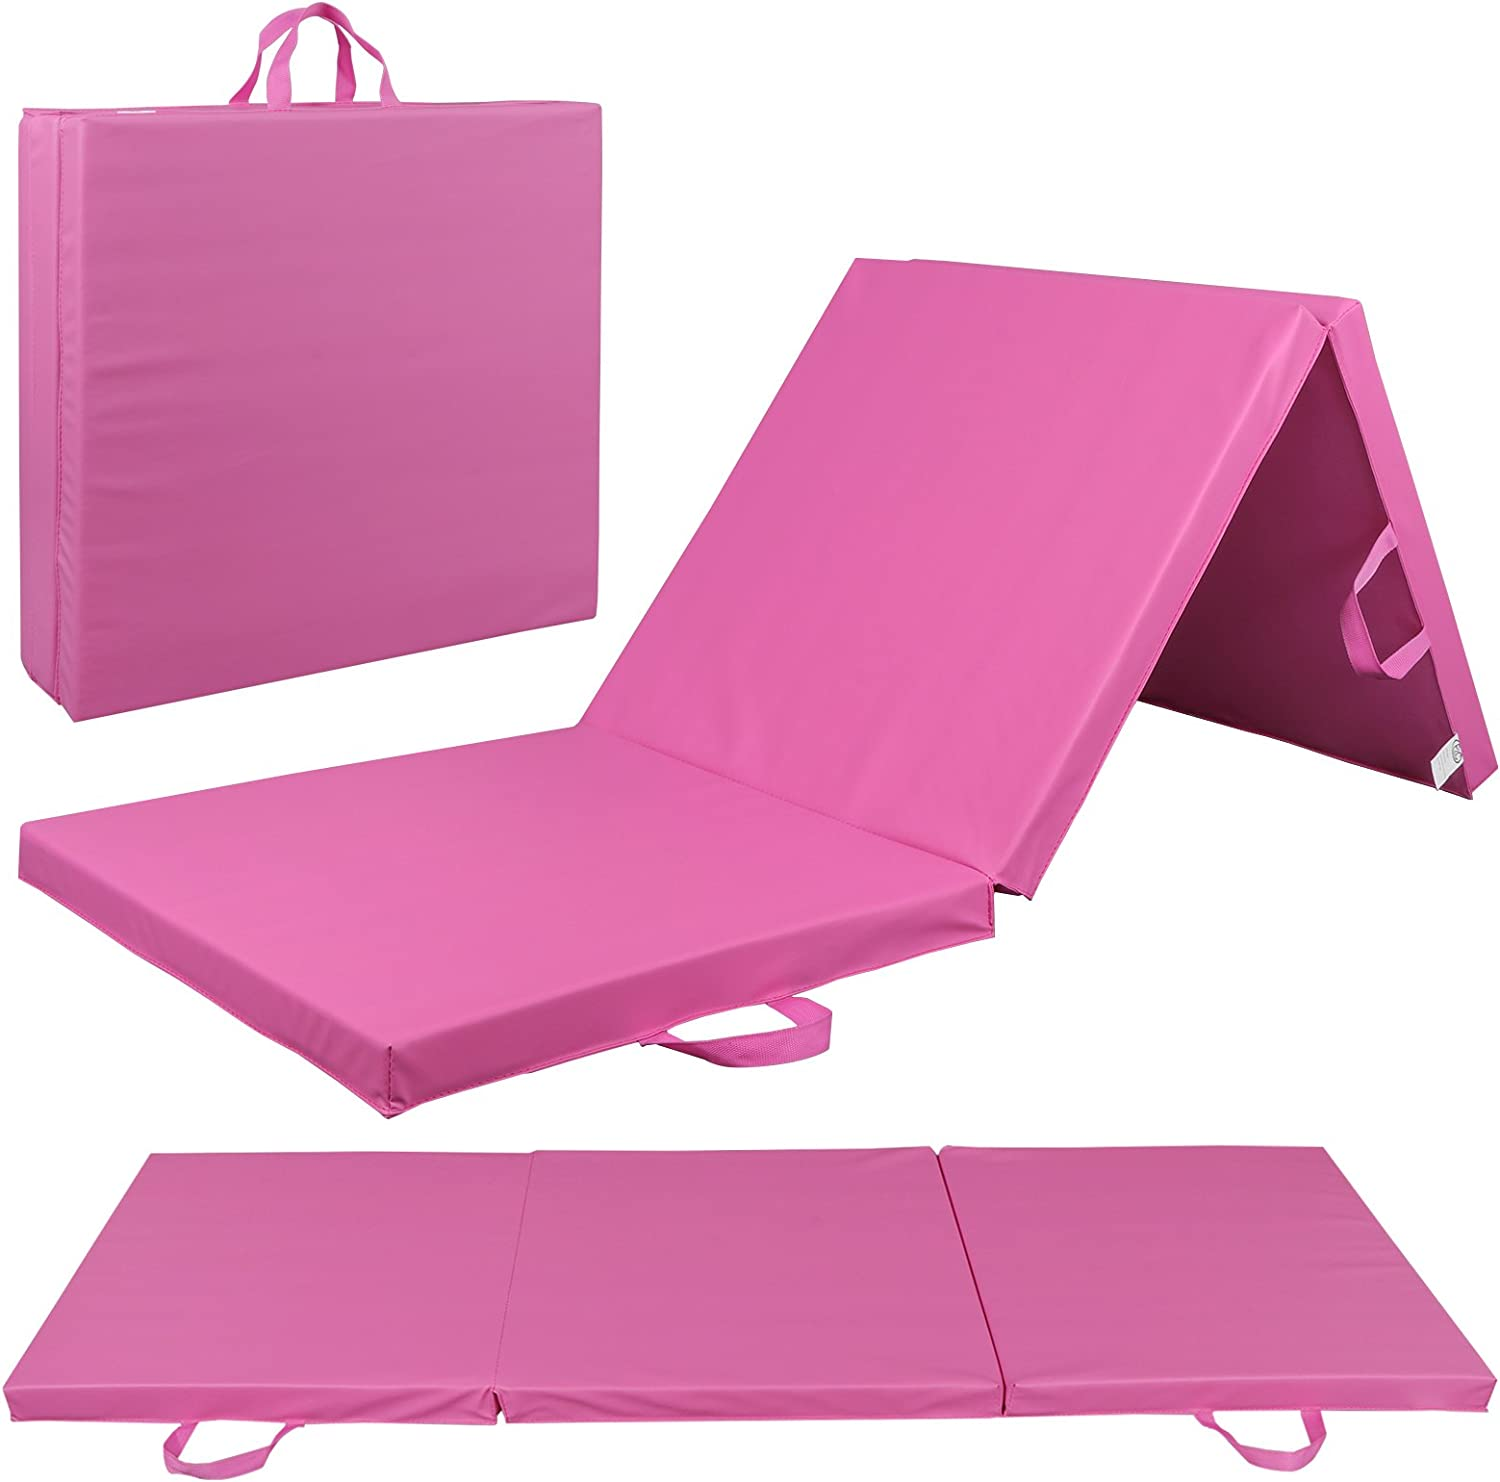 BBBuy 6' x 2' Tri-Fold Folding Exercise Gym Mat Thick Foam for Gymnastics Panel Aerobics Yoga Martial Arts MMA Stretching Core Workouts w/Carrying Handles